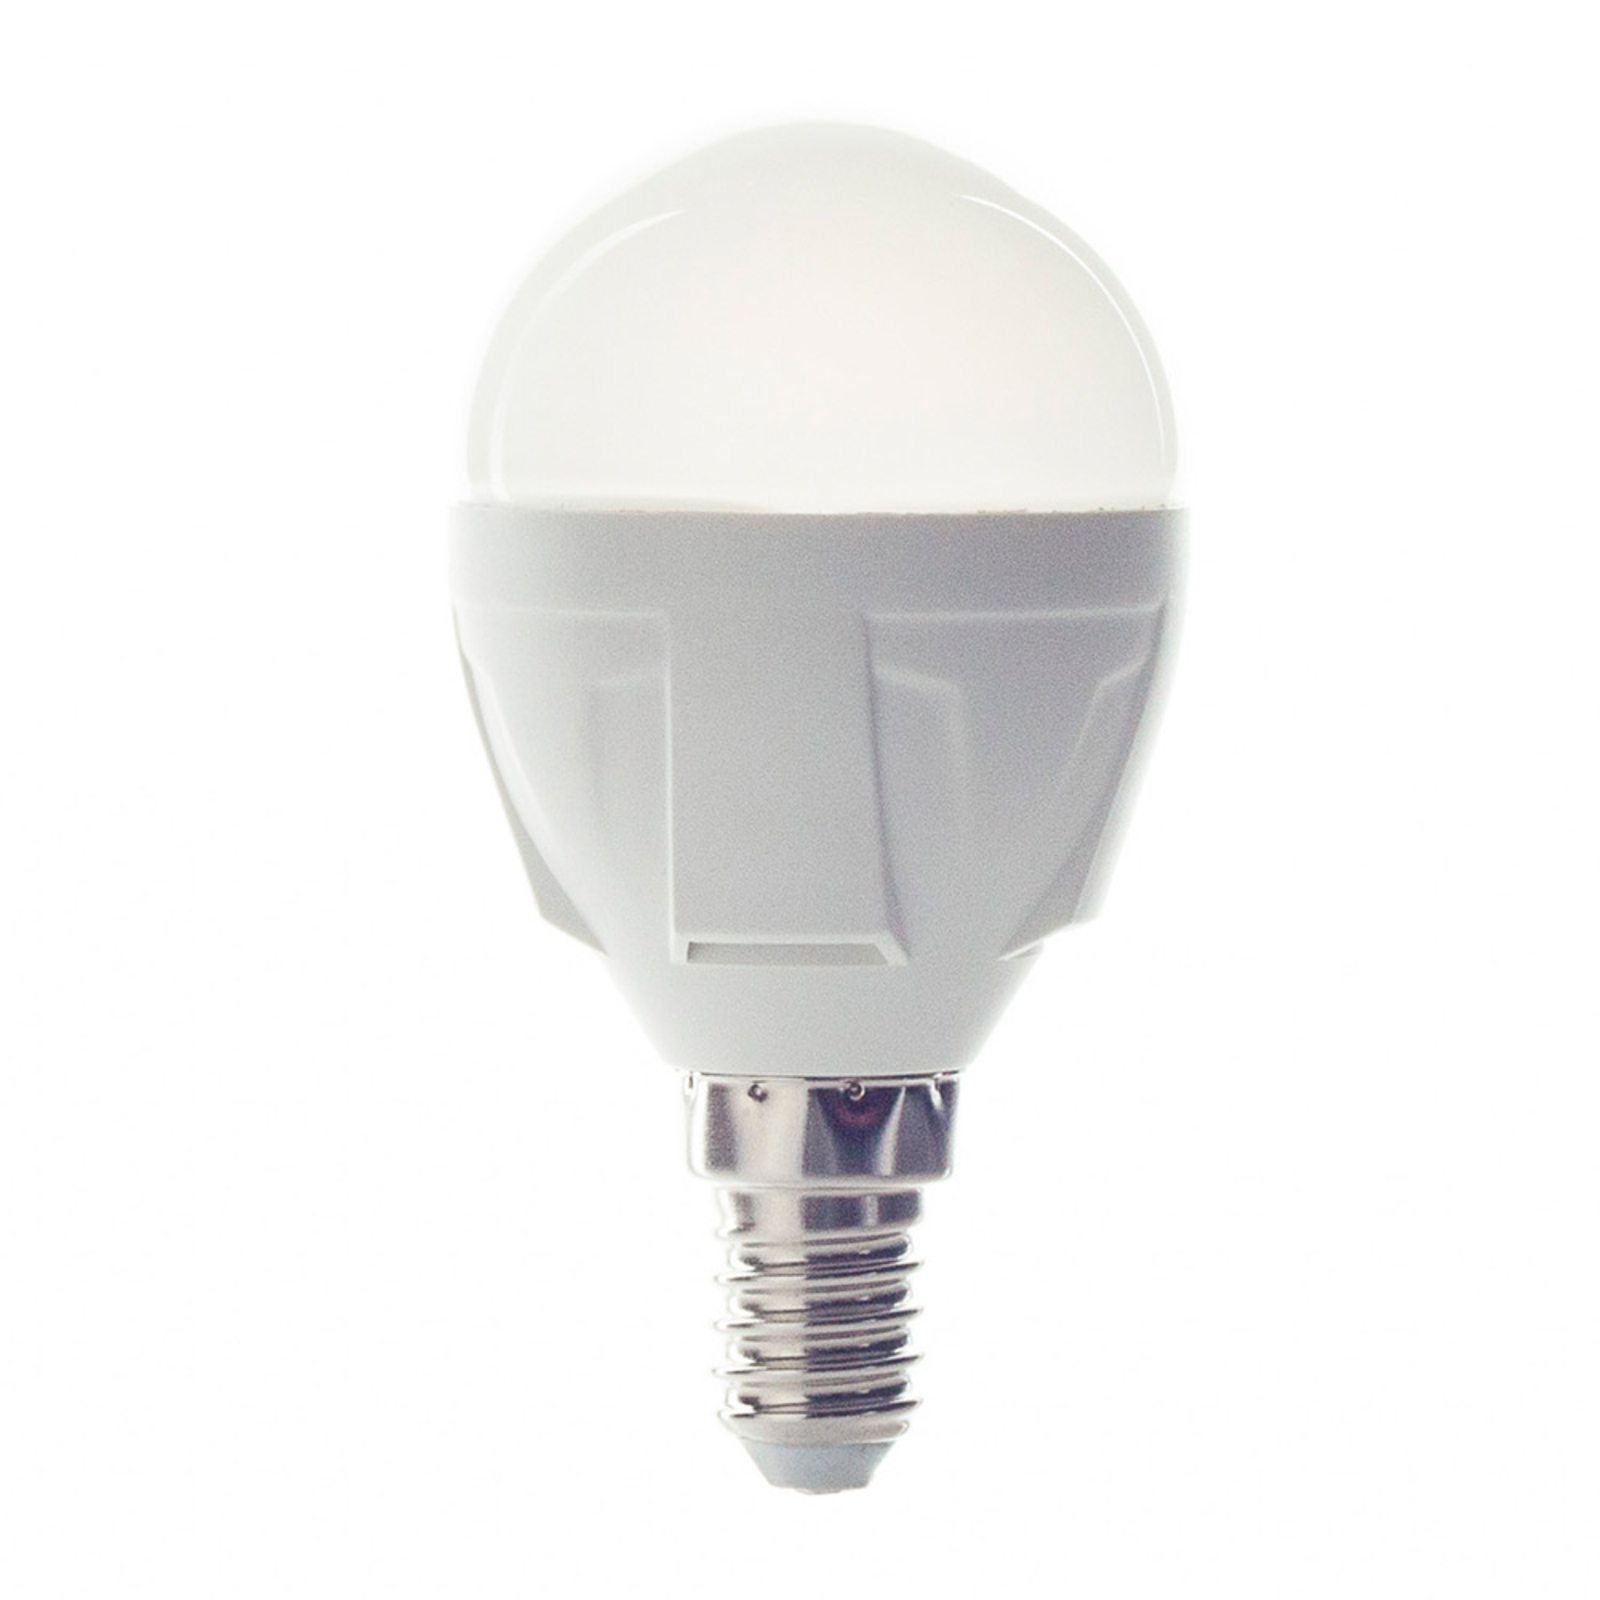 E14 6W 830 LED-lamp in druppelvorm warm-wit